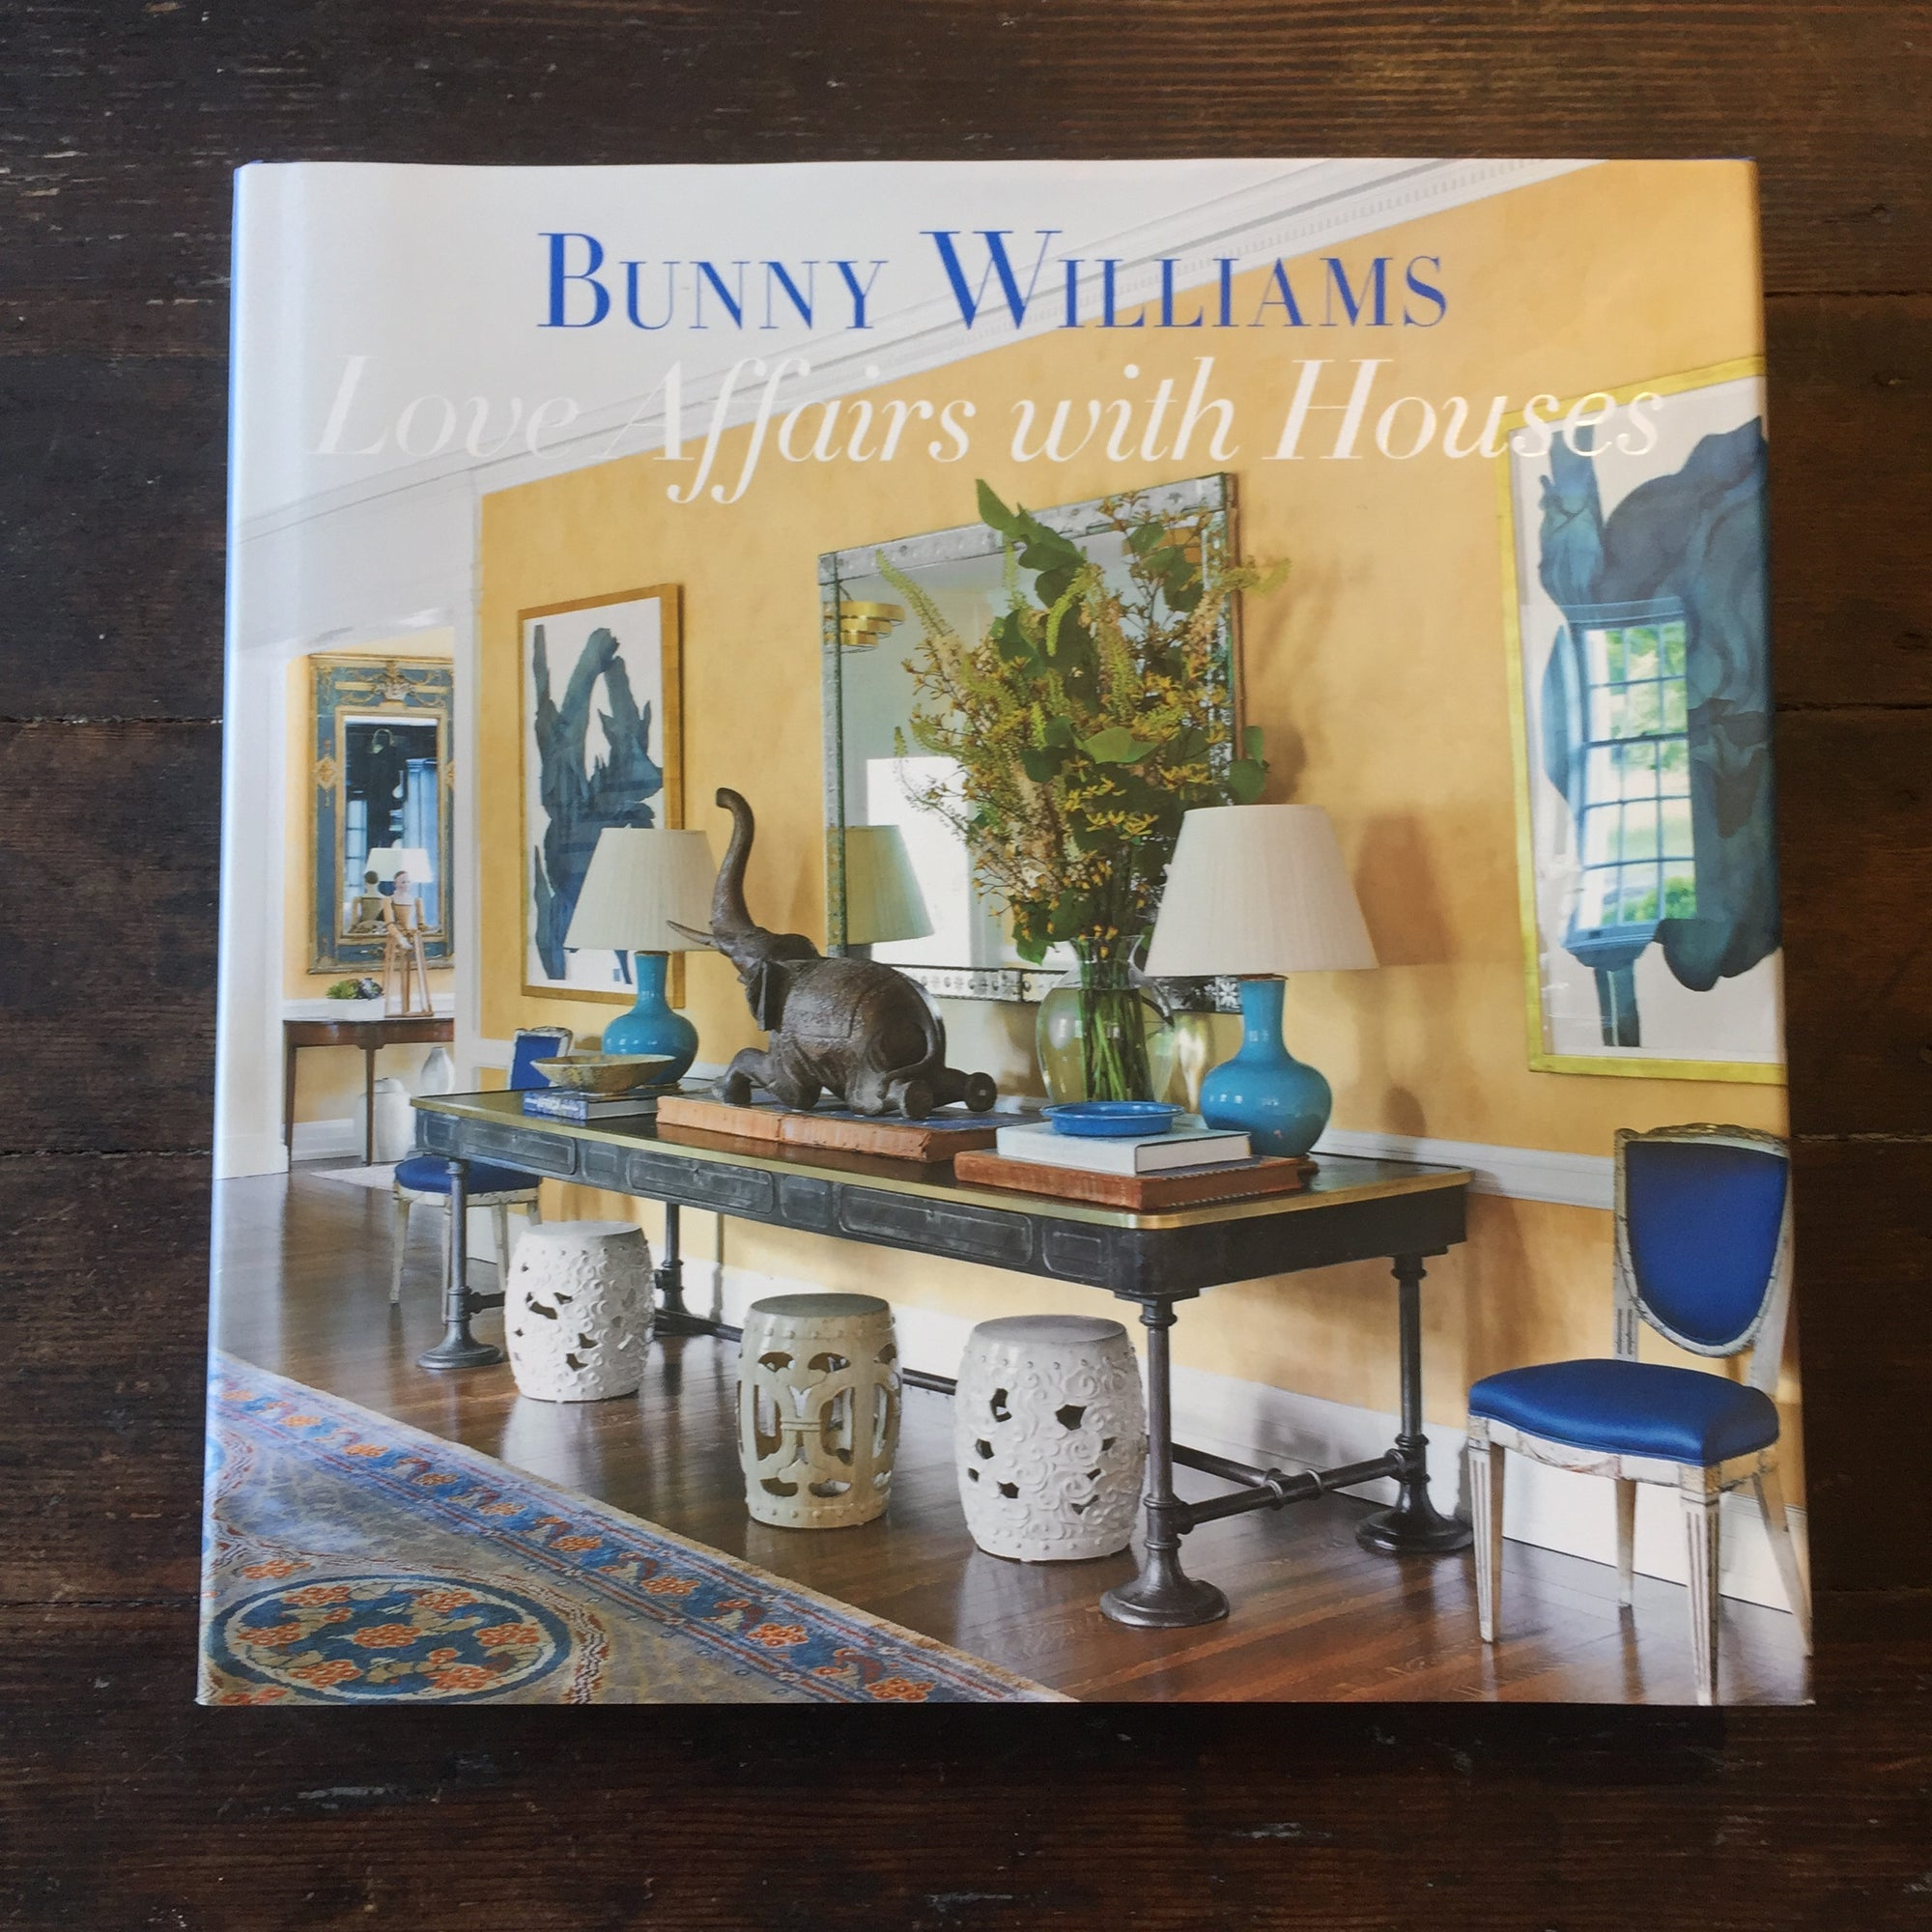 Bunny Williams Love Affairs With Houses